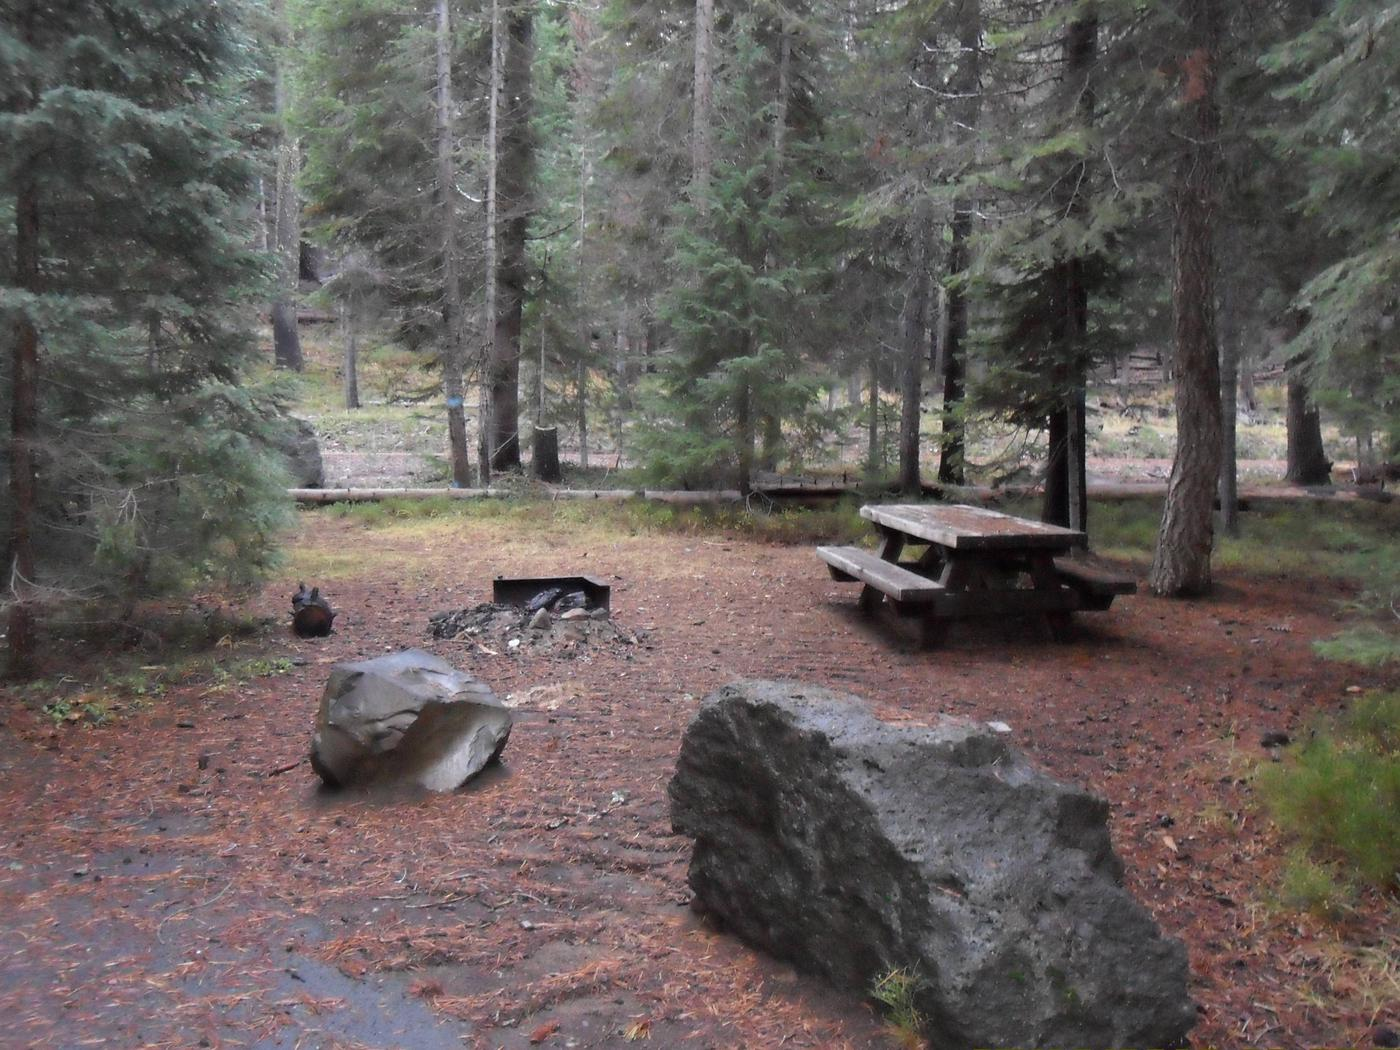 Flat campsite with one picnic table and fire ring.C-10